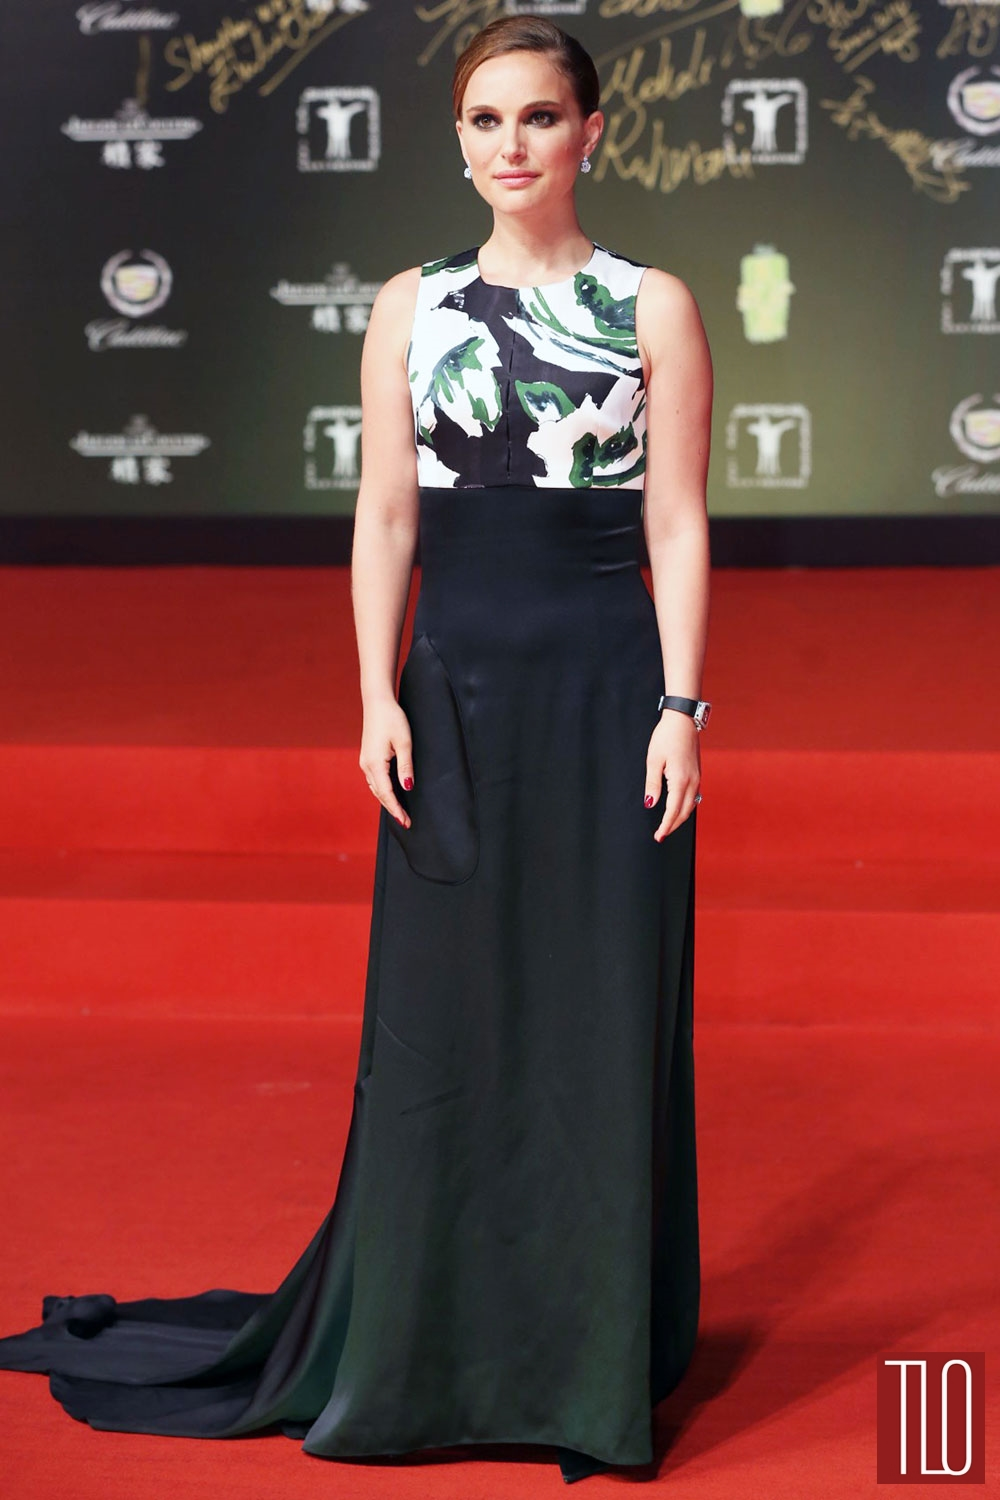 Natalie-Portman-Christian-Dior-2014-Shanghai-International-Film-Festival-Tom-Lorenzo-Site-TLO (1)